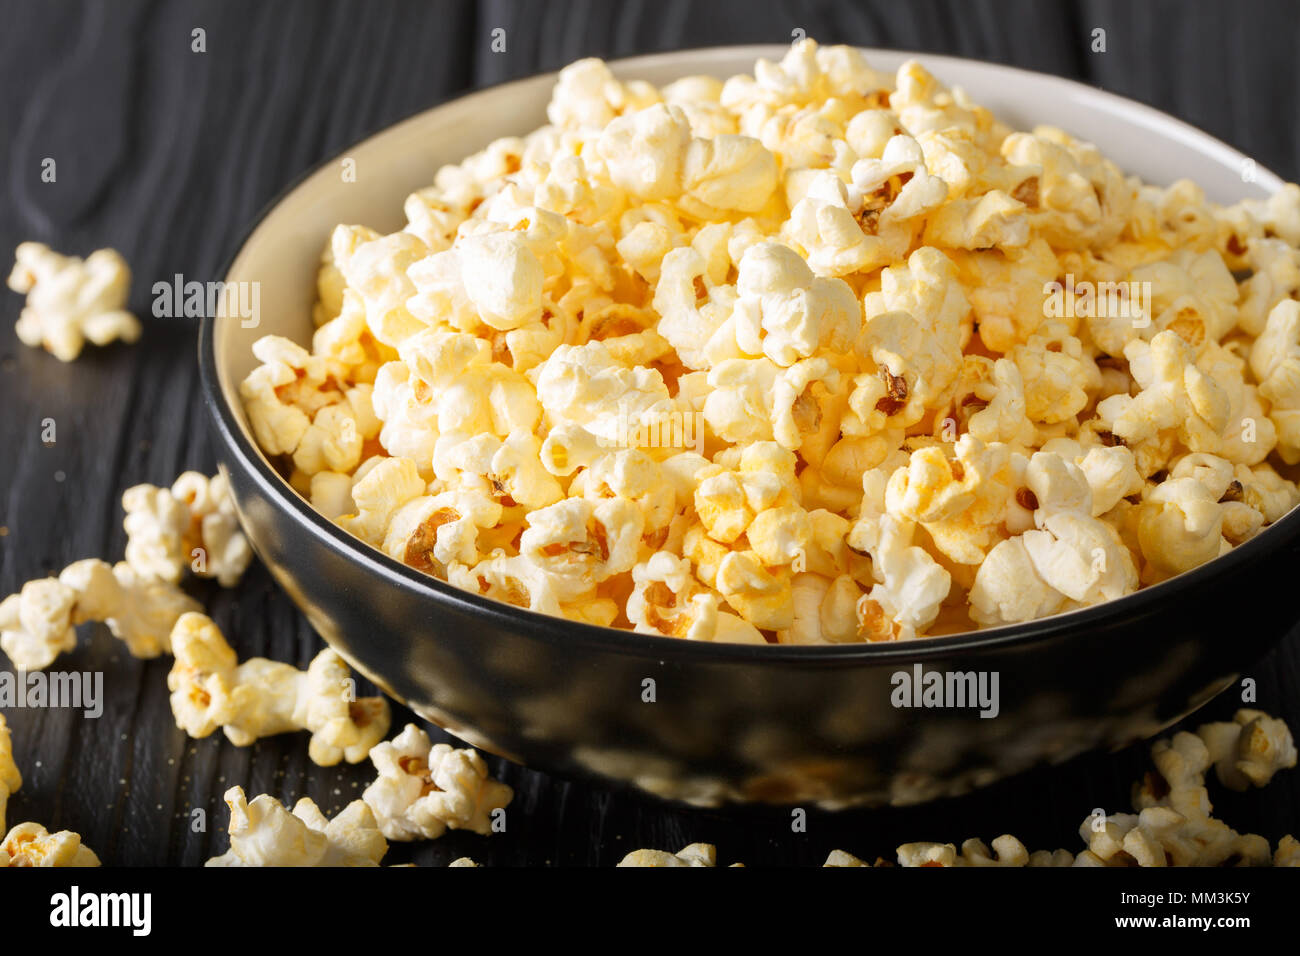 Popular snack: salted popcorn with cheddar cheese and parmesan in a bowl close-up on the table. horizontal - Stock Image